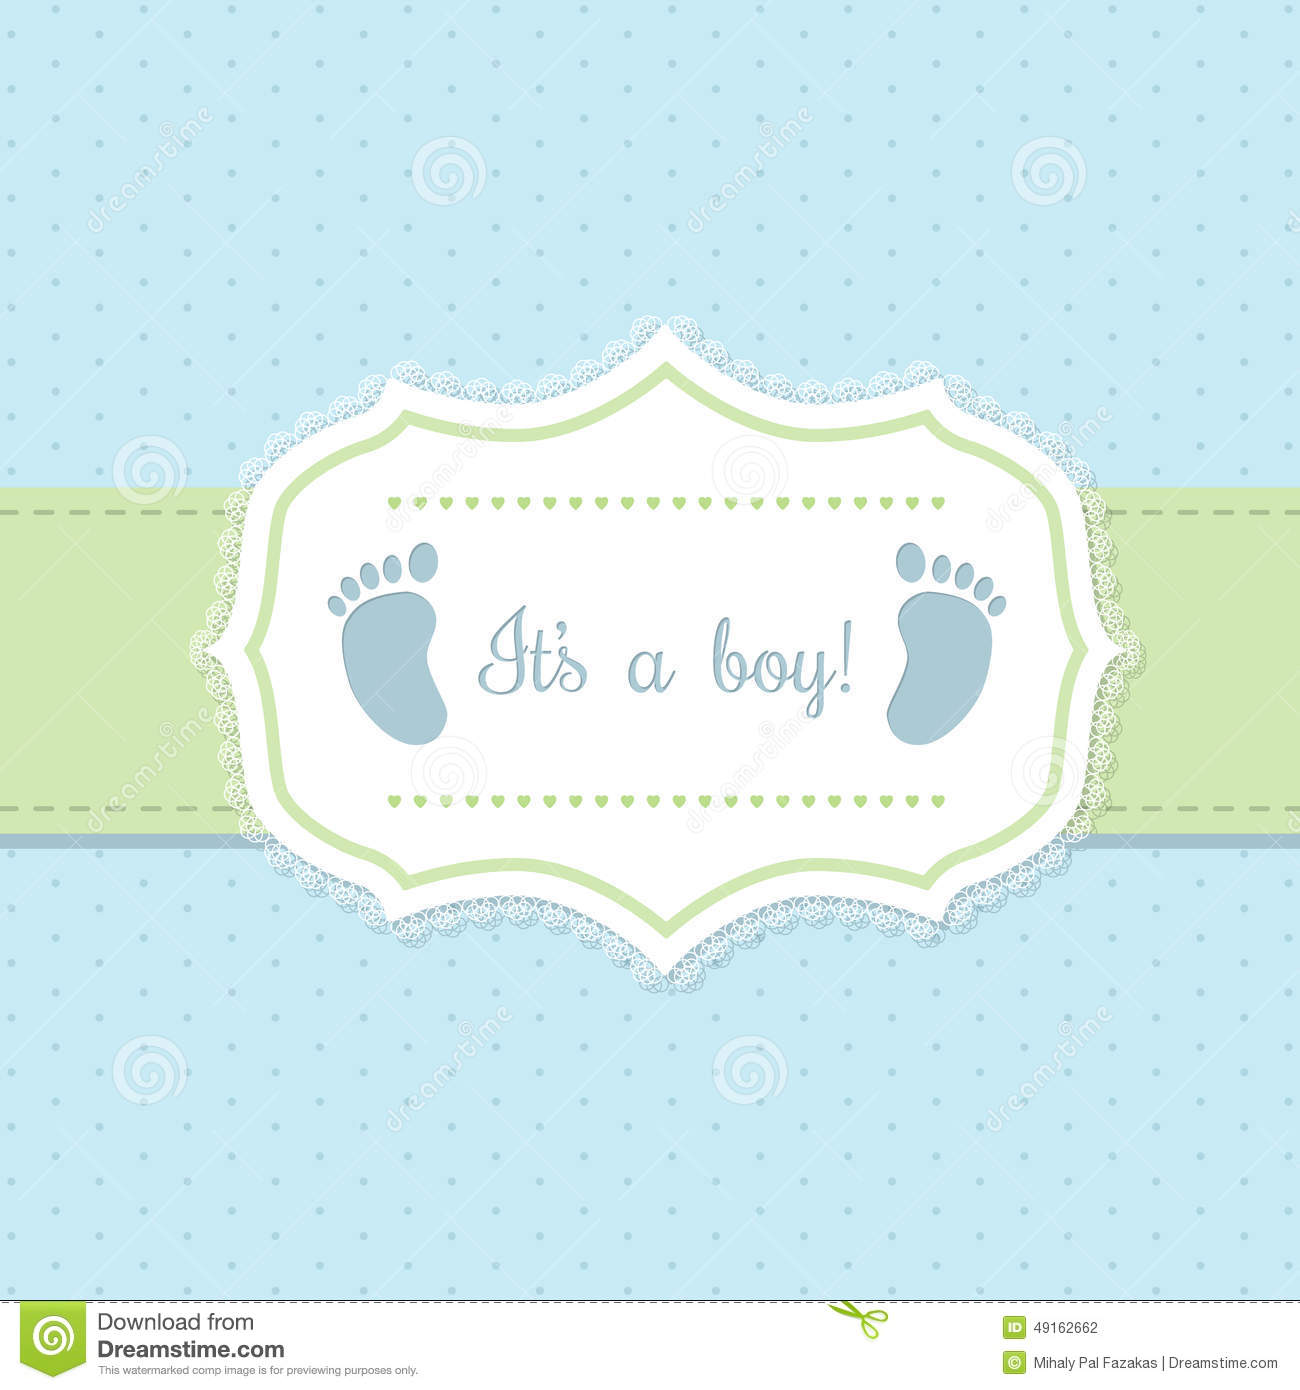 Baby shower invitation design in blue and green stock vector baby shower invitation design in blue and green with footprints filmwisefo